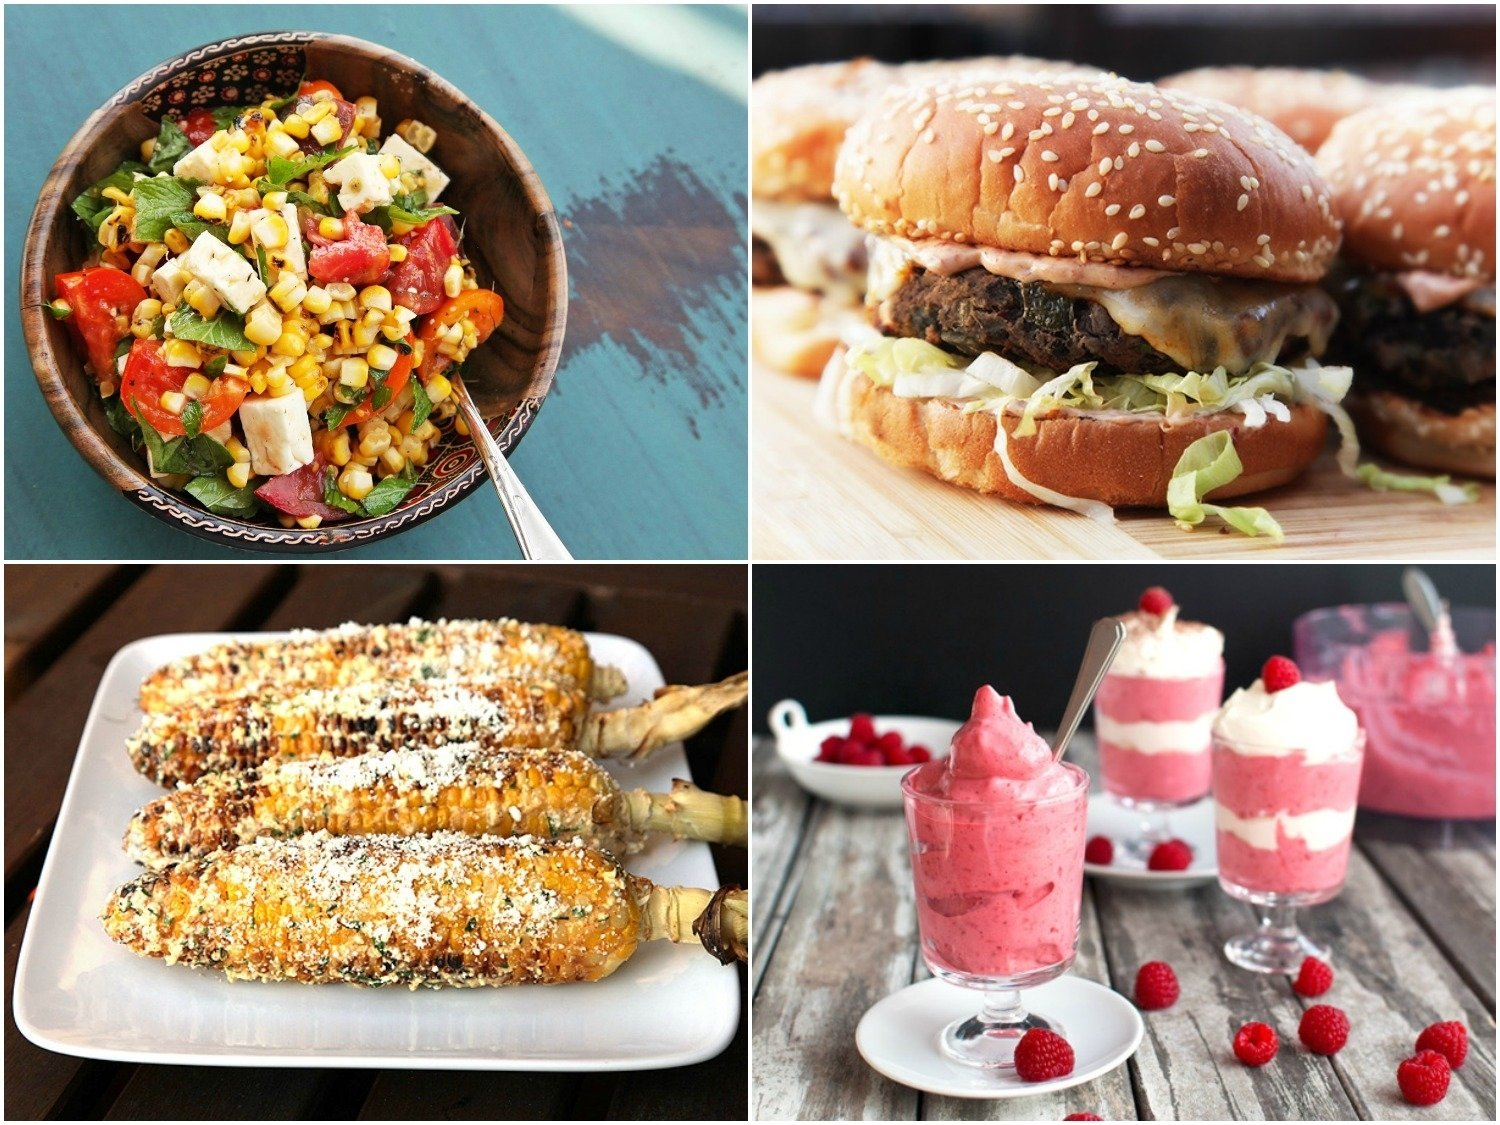 10 Famous 4Th Of July Grilling Ideas a killer vegetarian fourth of july menu even an omnivore will love 1 2020